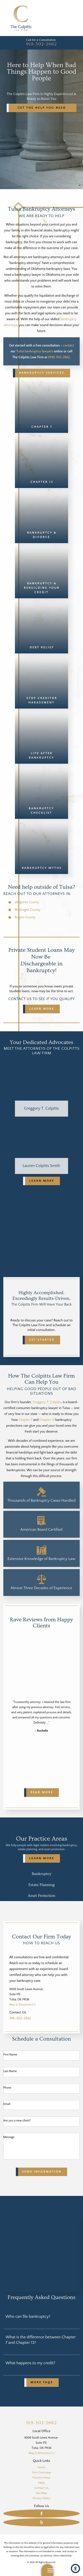 The Colpitts Law Firm - Tulsa OK Lawyers